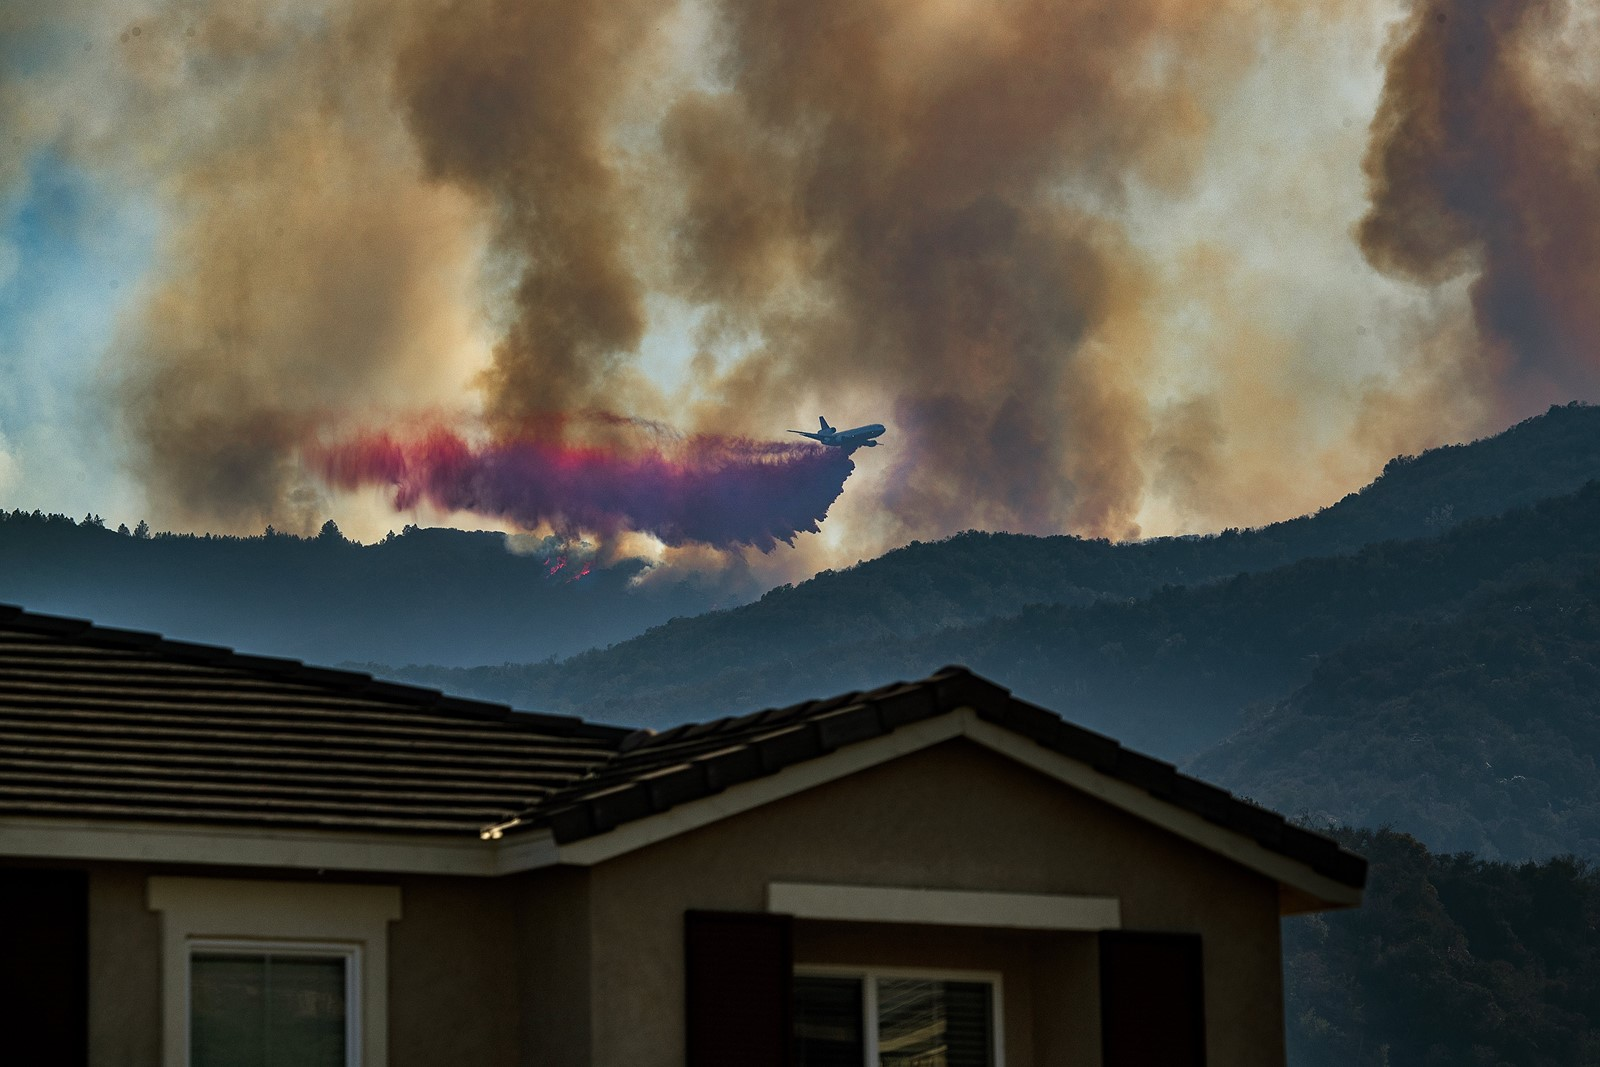 An air tanker drops fire retardant on the Holy fire burning in Cleveland National Forest above a home in Lake Elsinore on Tuesday afternoon. The fast-moving fire broke out on Monday, burning more than 3,000 acres and forcing evacuations in two Orange County canyons. — Photograph: Allen J. Schaben/Los Angeles Times.